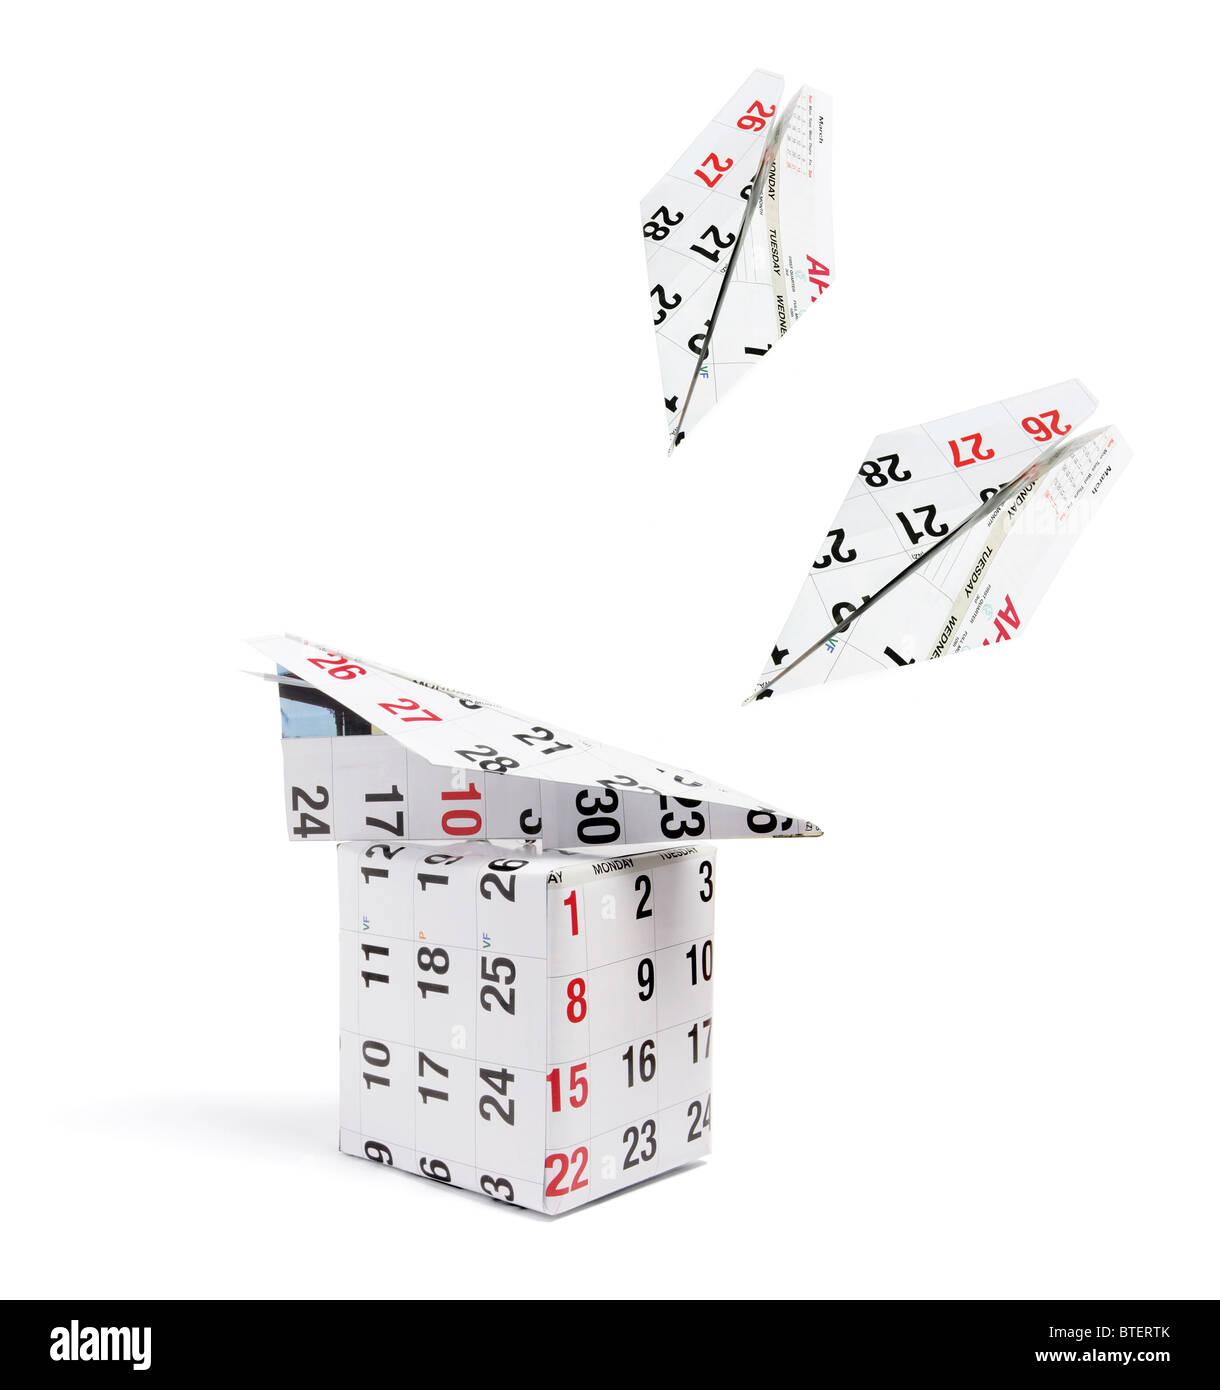 Gift Parcel and Calender Paper Planes - Stock Image